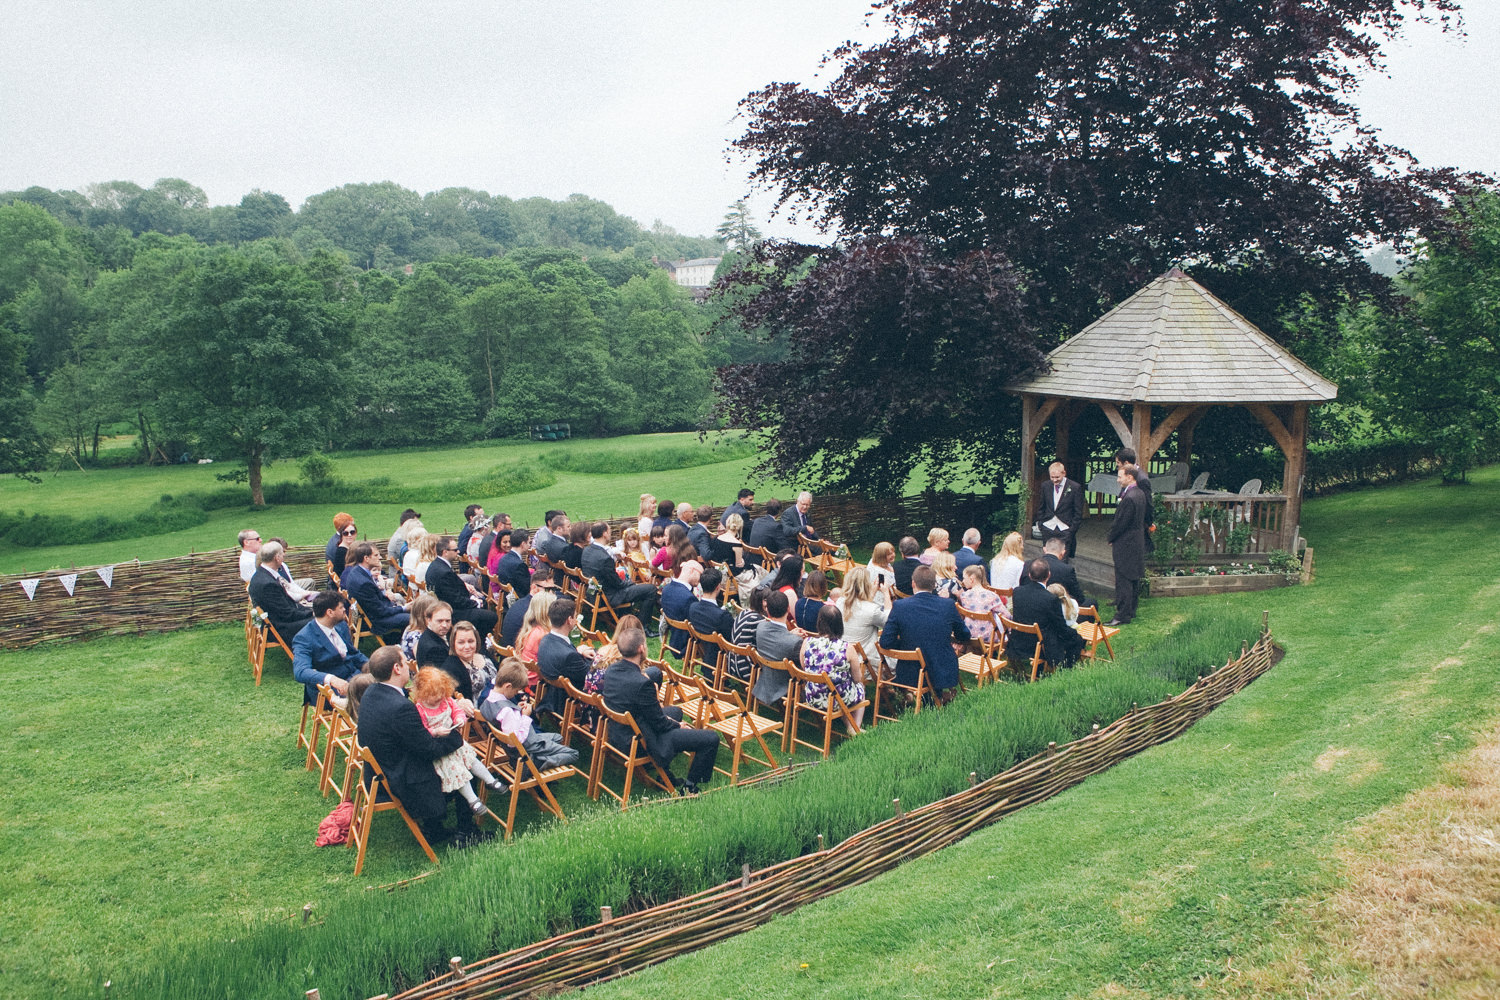 Annie & Phil's Somerset wedding at The Longhouse in Bruton, 4th June 2016.